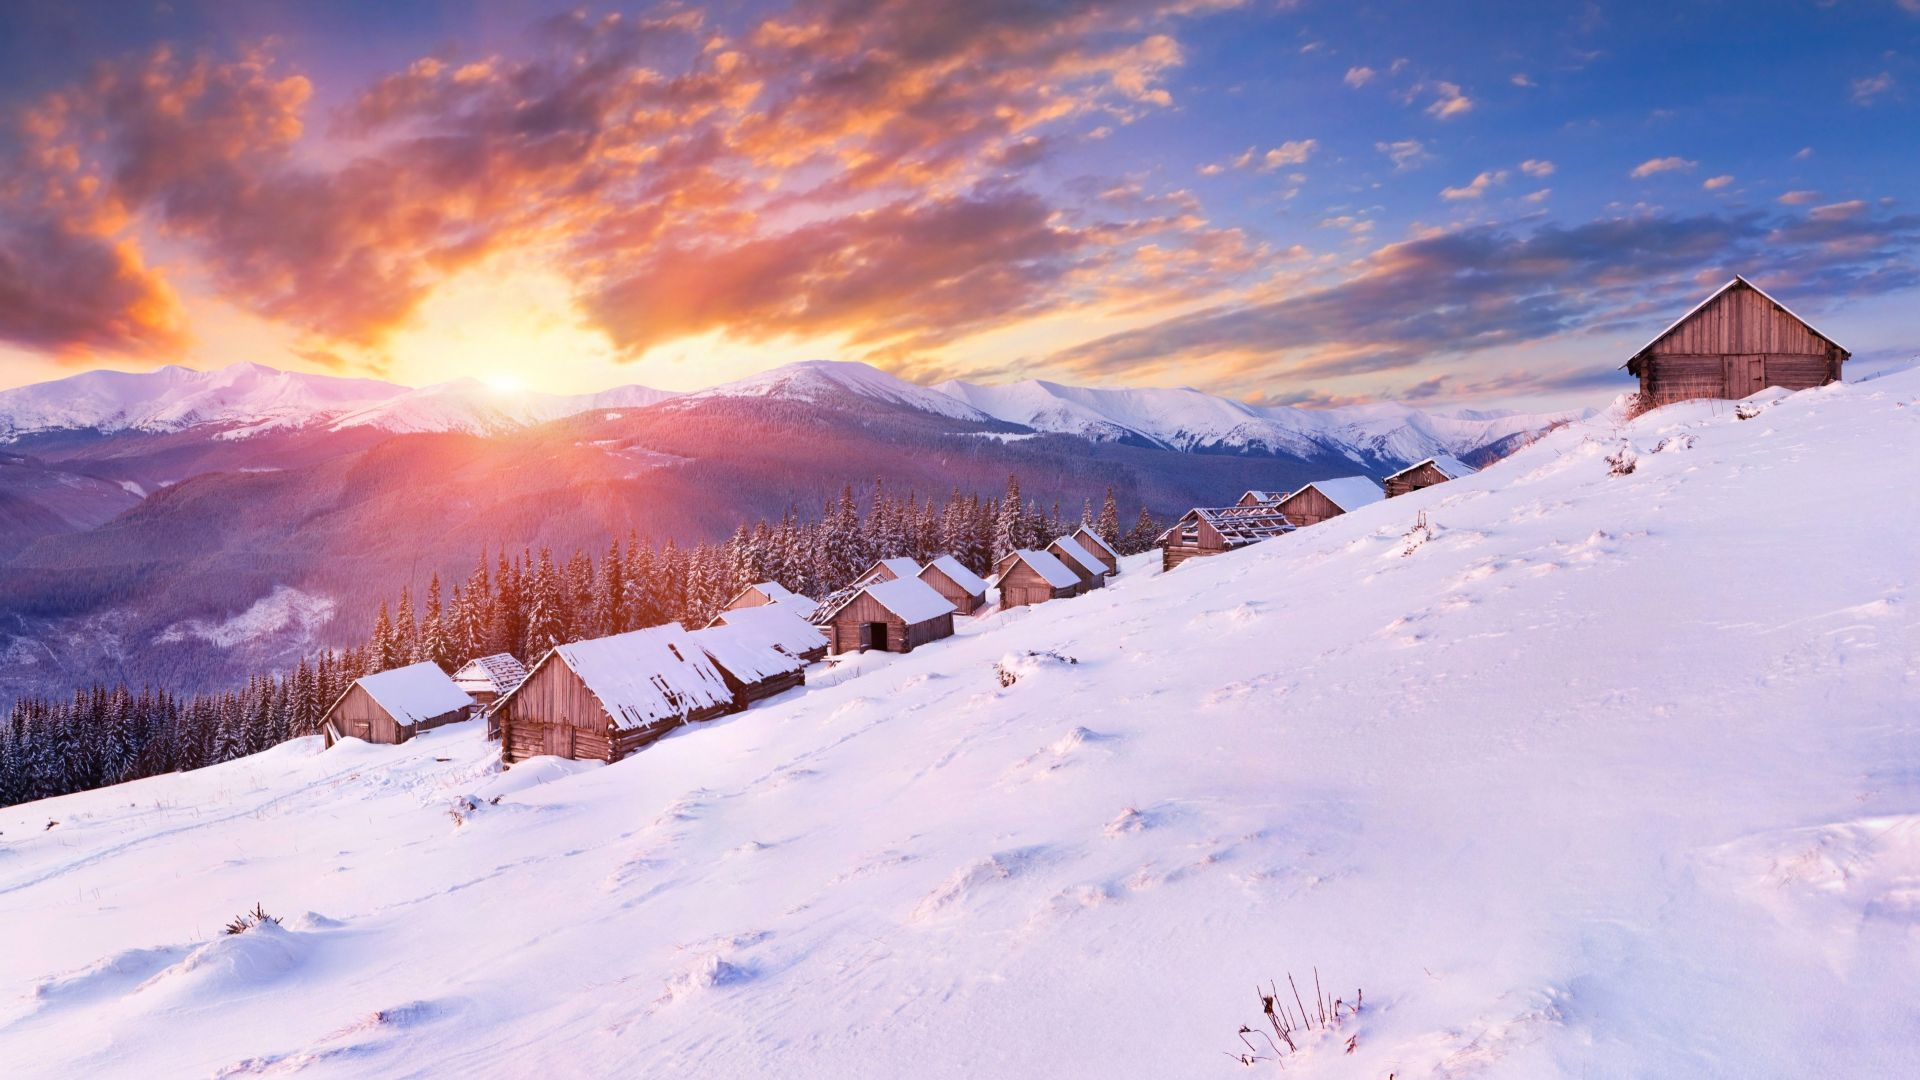 Mountains, hills, sunset, snow, winter, house